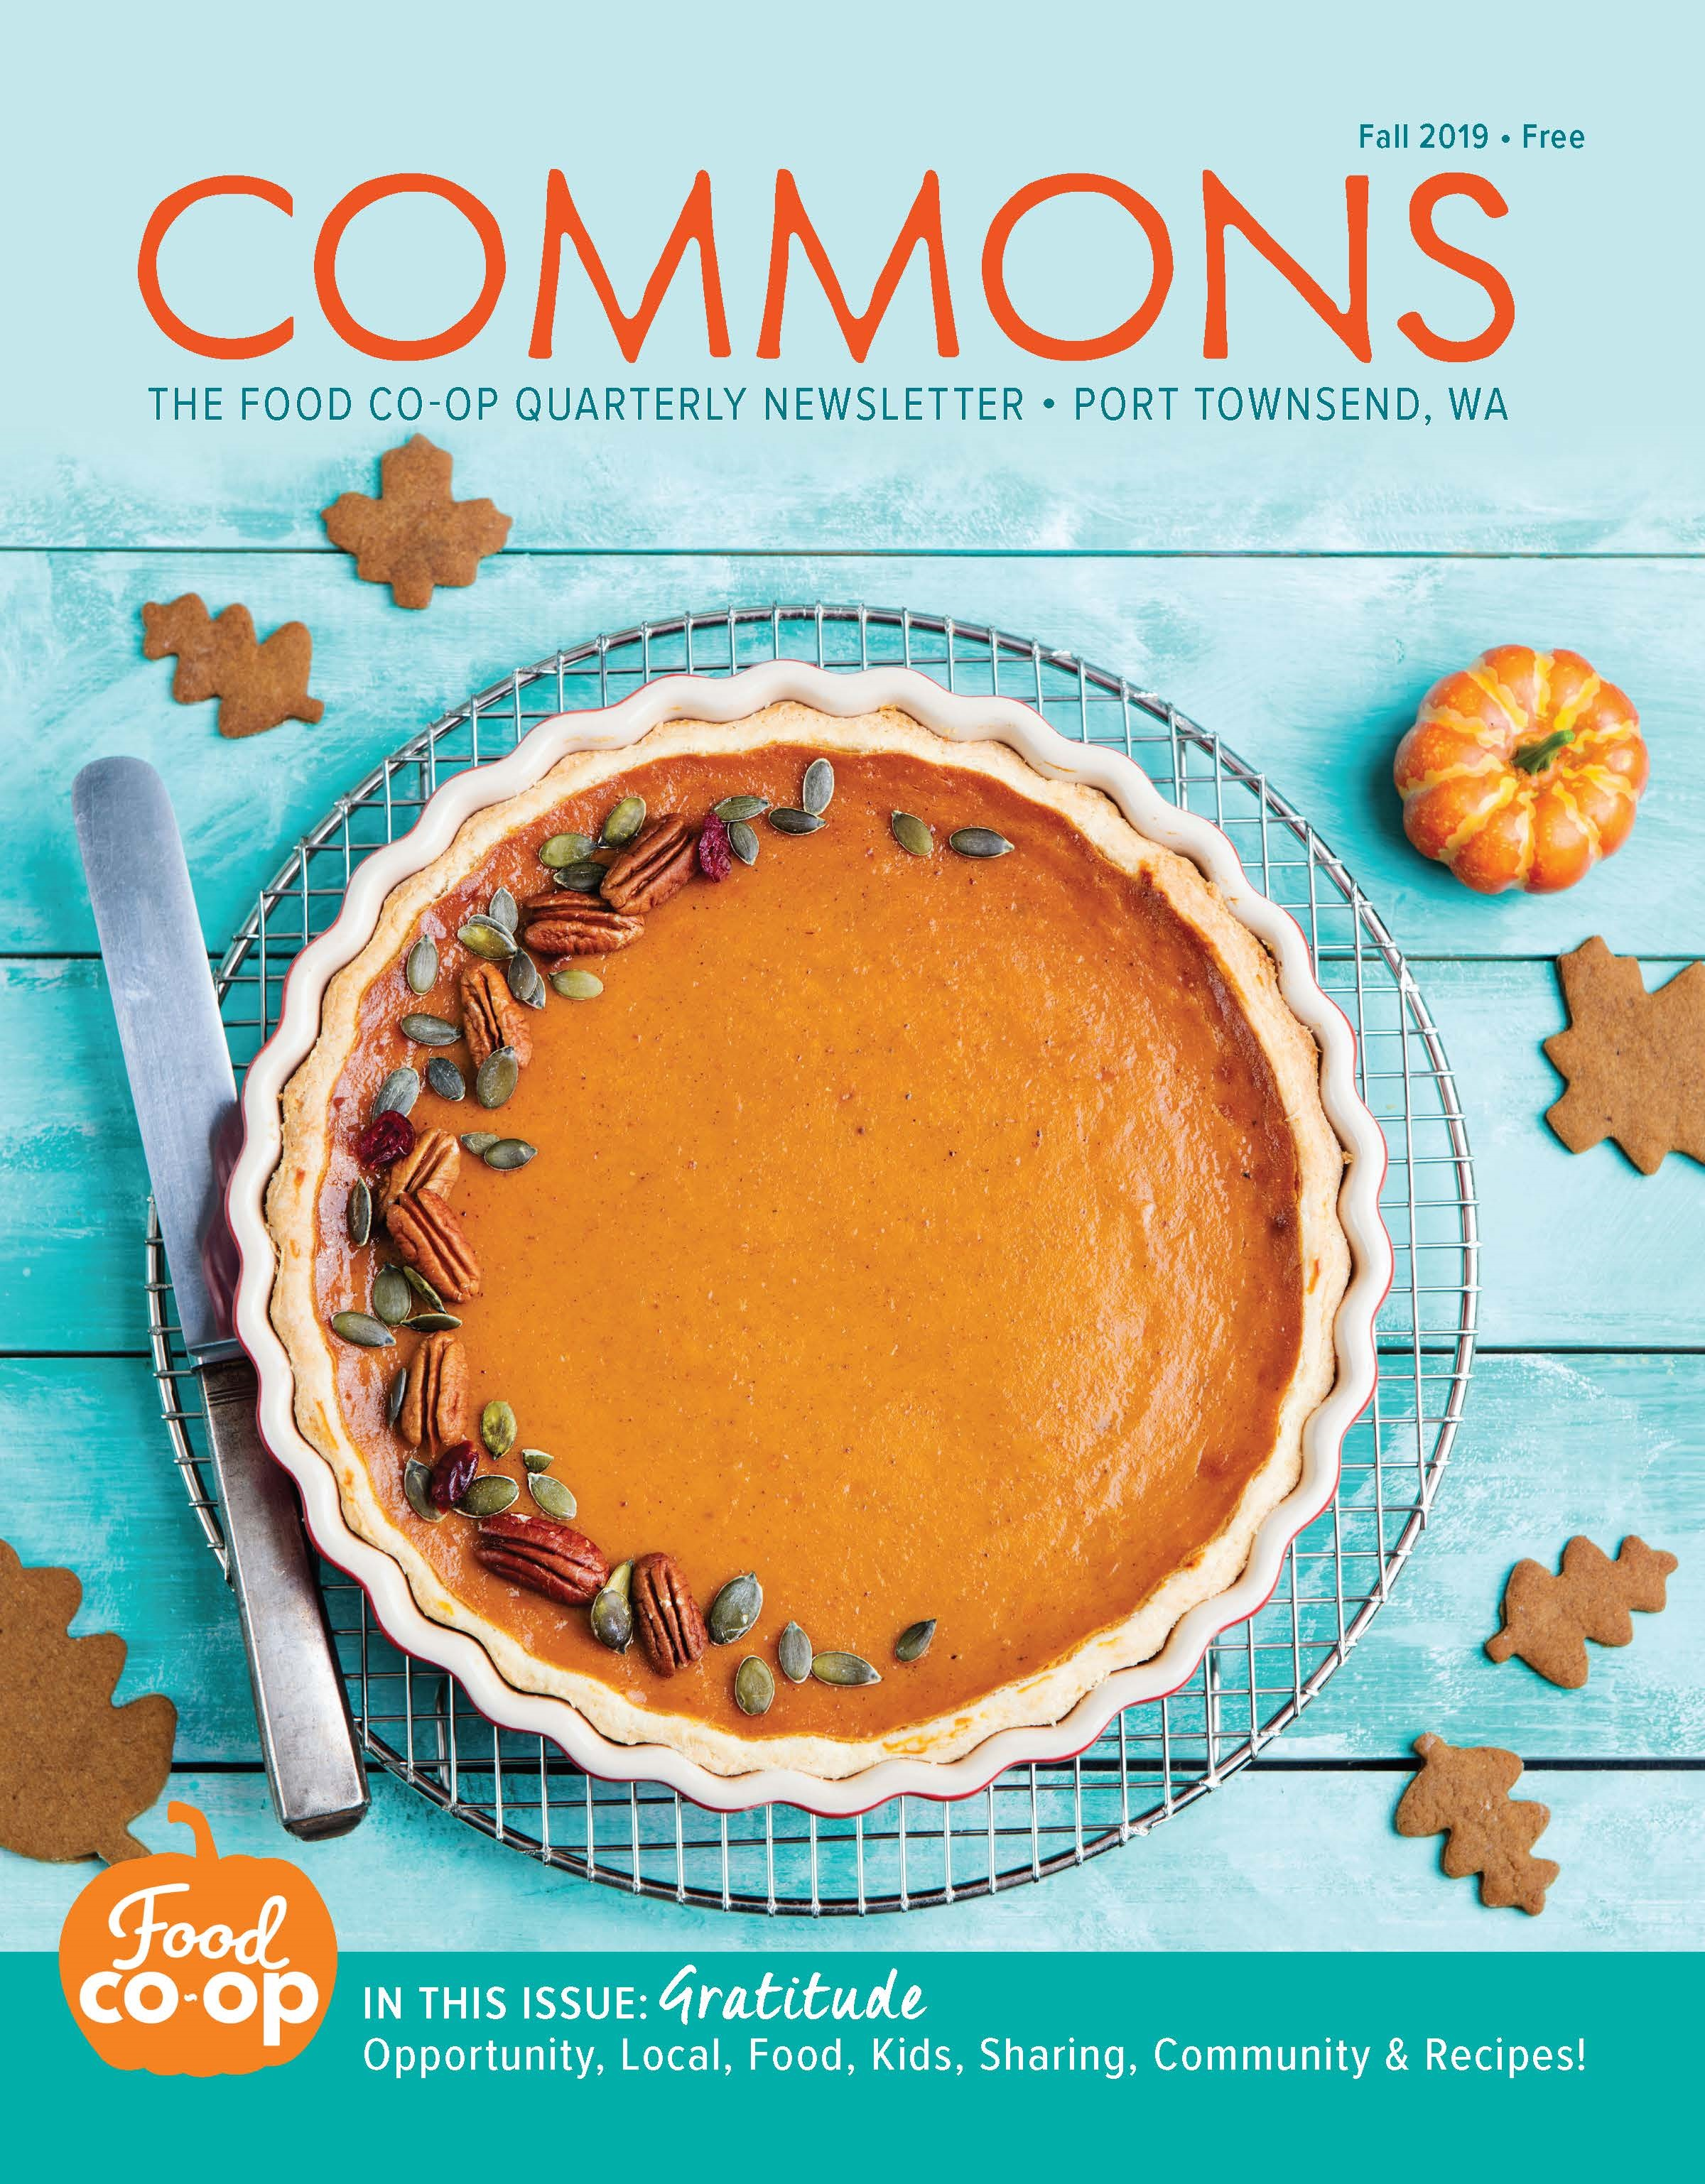 COMMONS Fall 2019 -Cover_Page_01.jpg